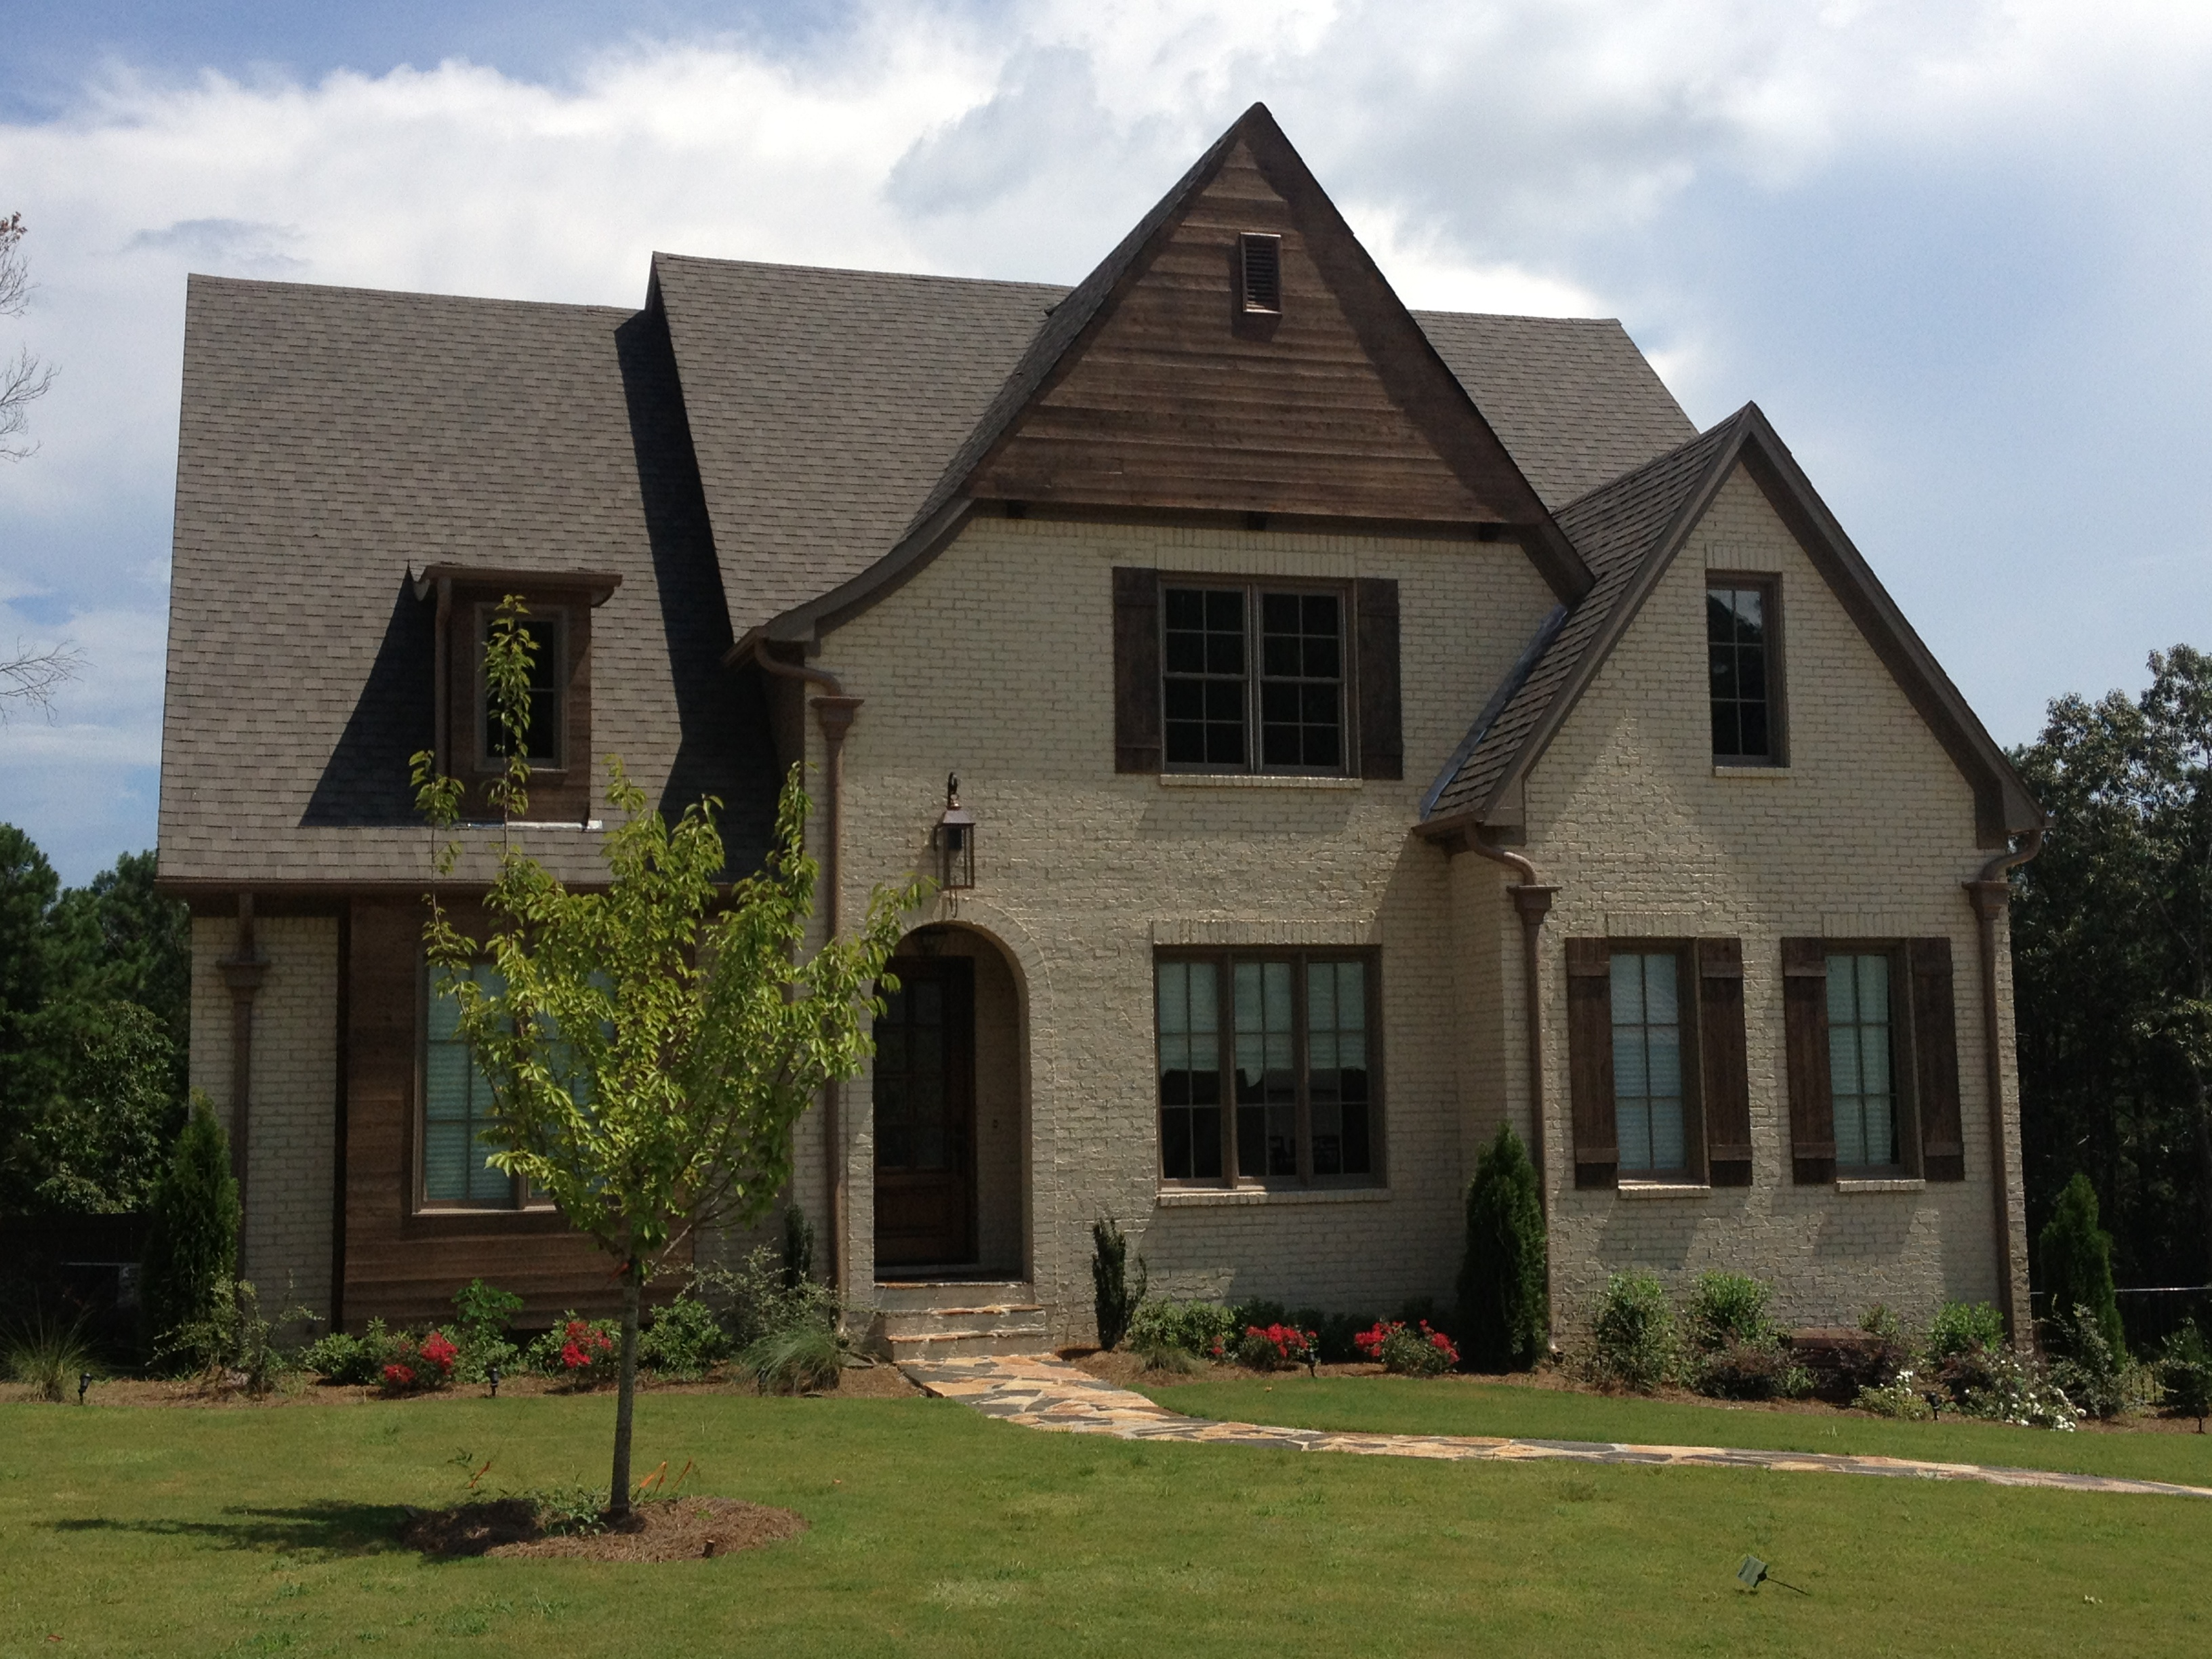 Kadco homes the best custom home builders in birmingham for House builders in alabama